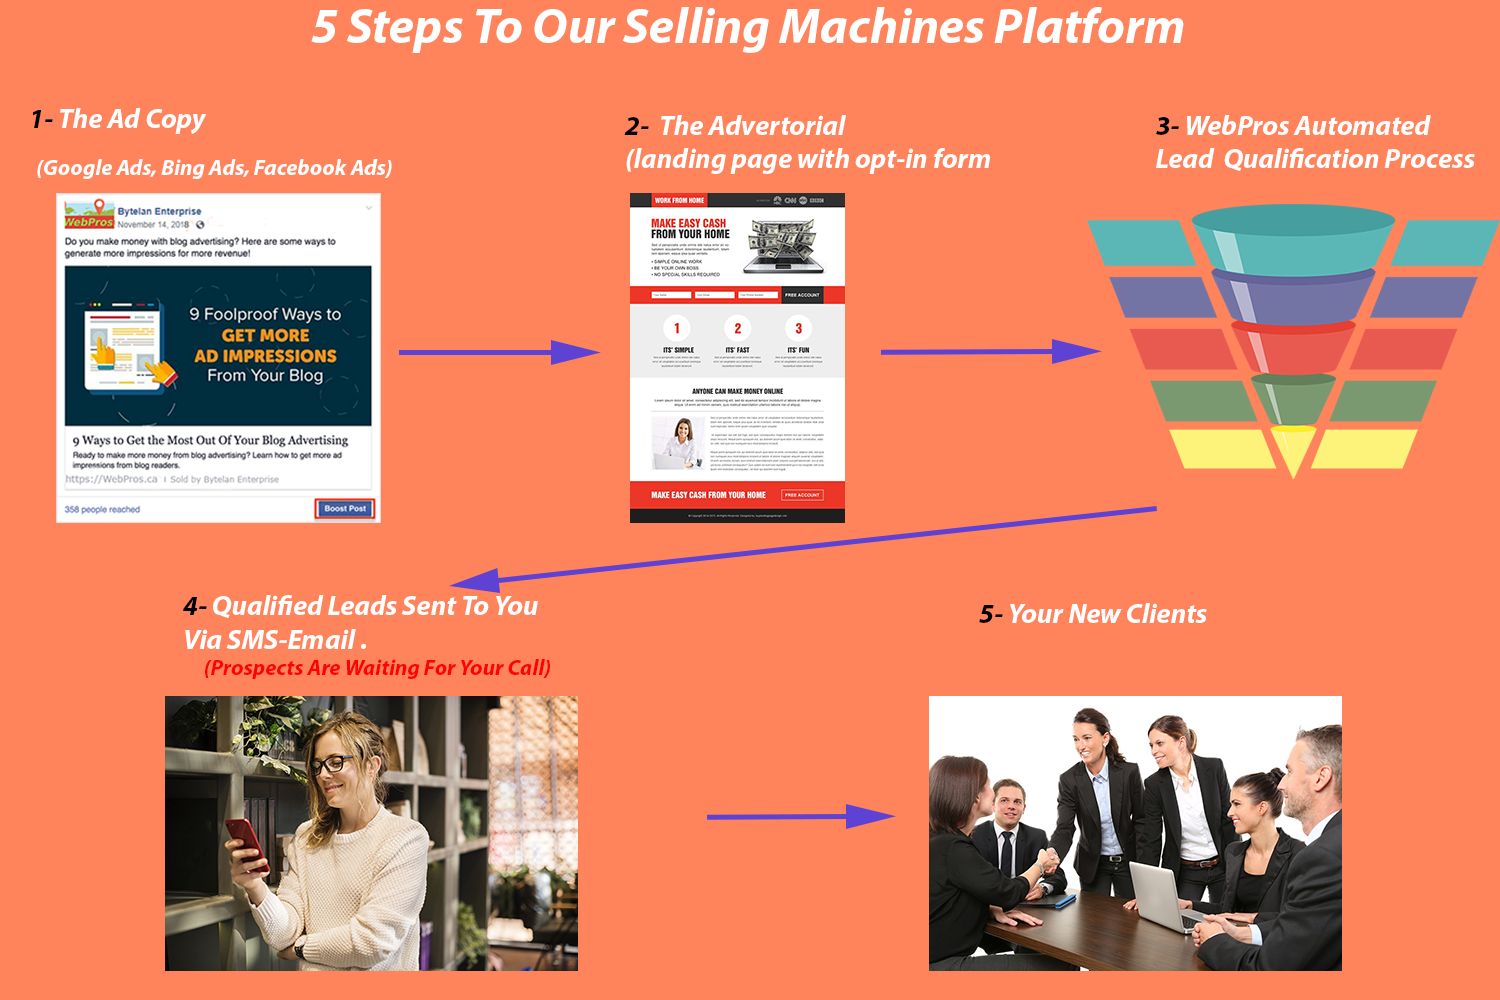 Web Pros 6StepsSellingMachines Selling Machines